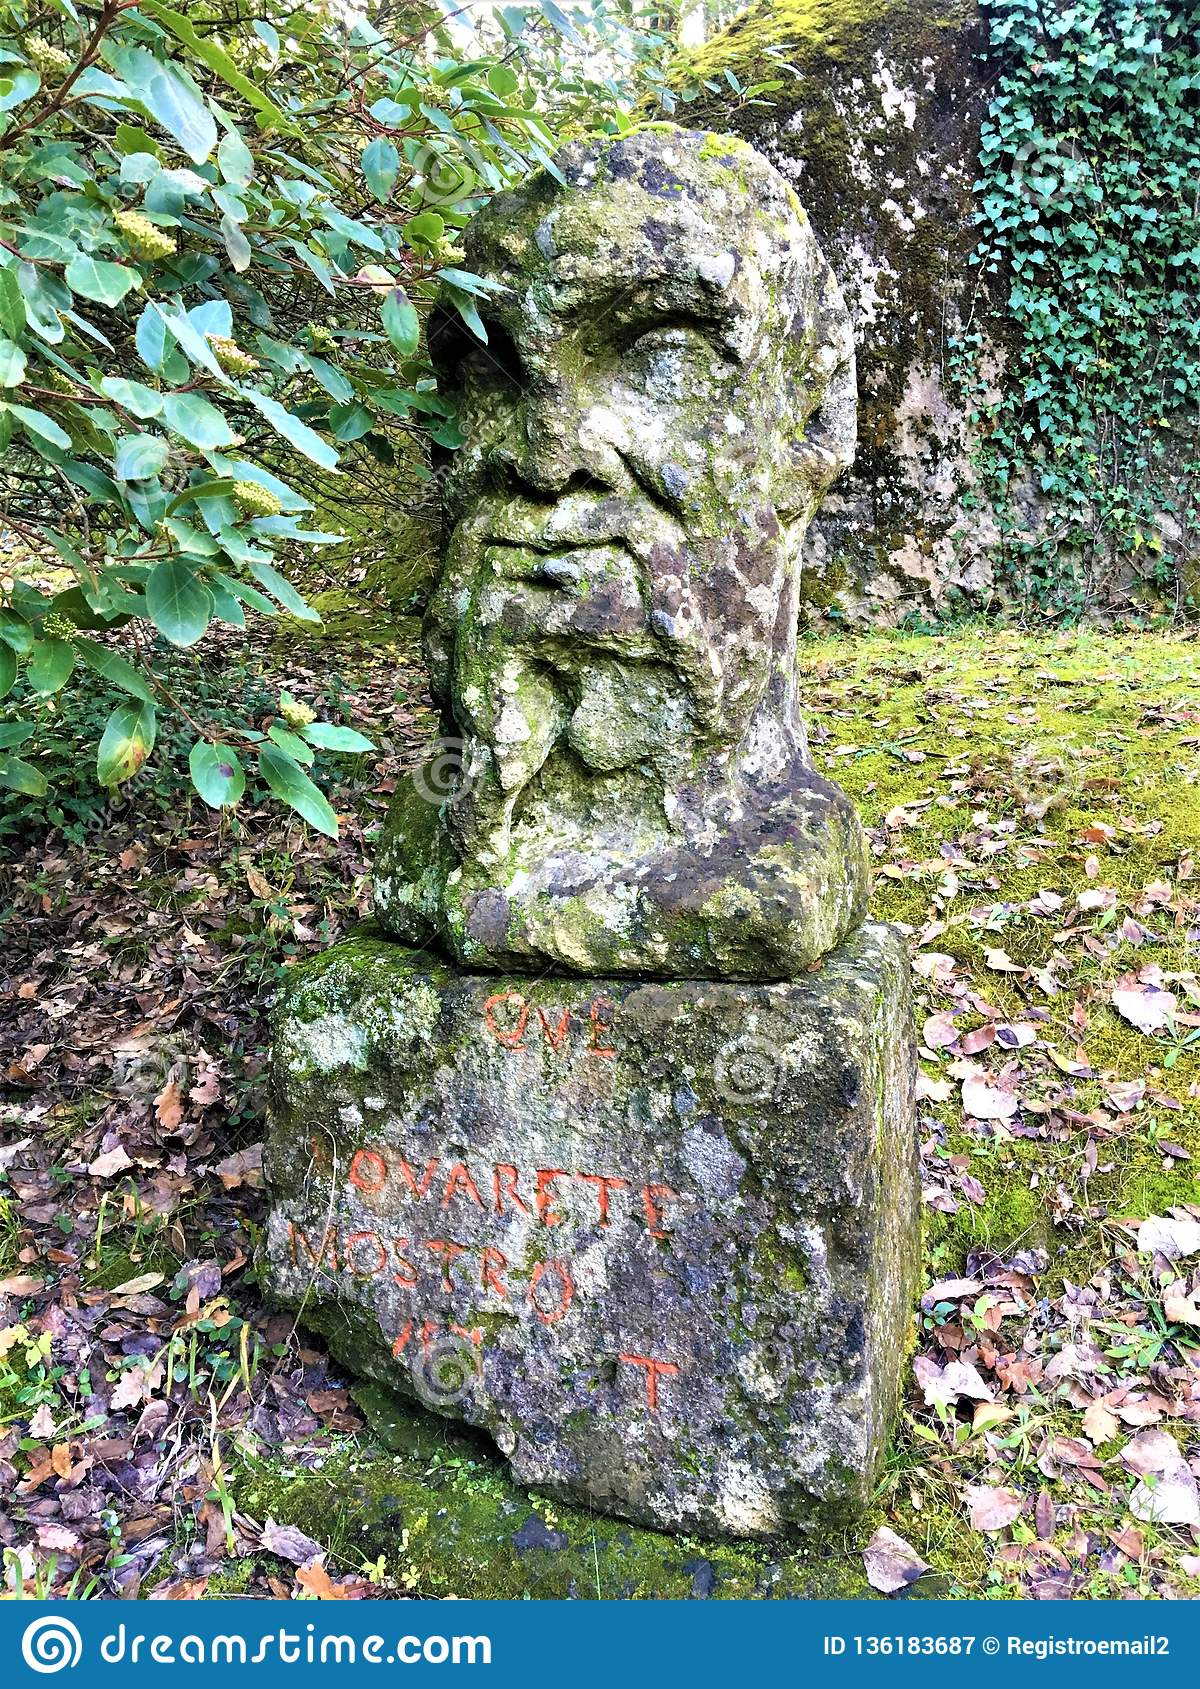 Park of the Monsters, Sacred Grove, Garden of Bomarzo. Pier Francesco Orsini and his statues